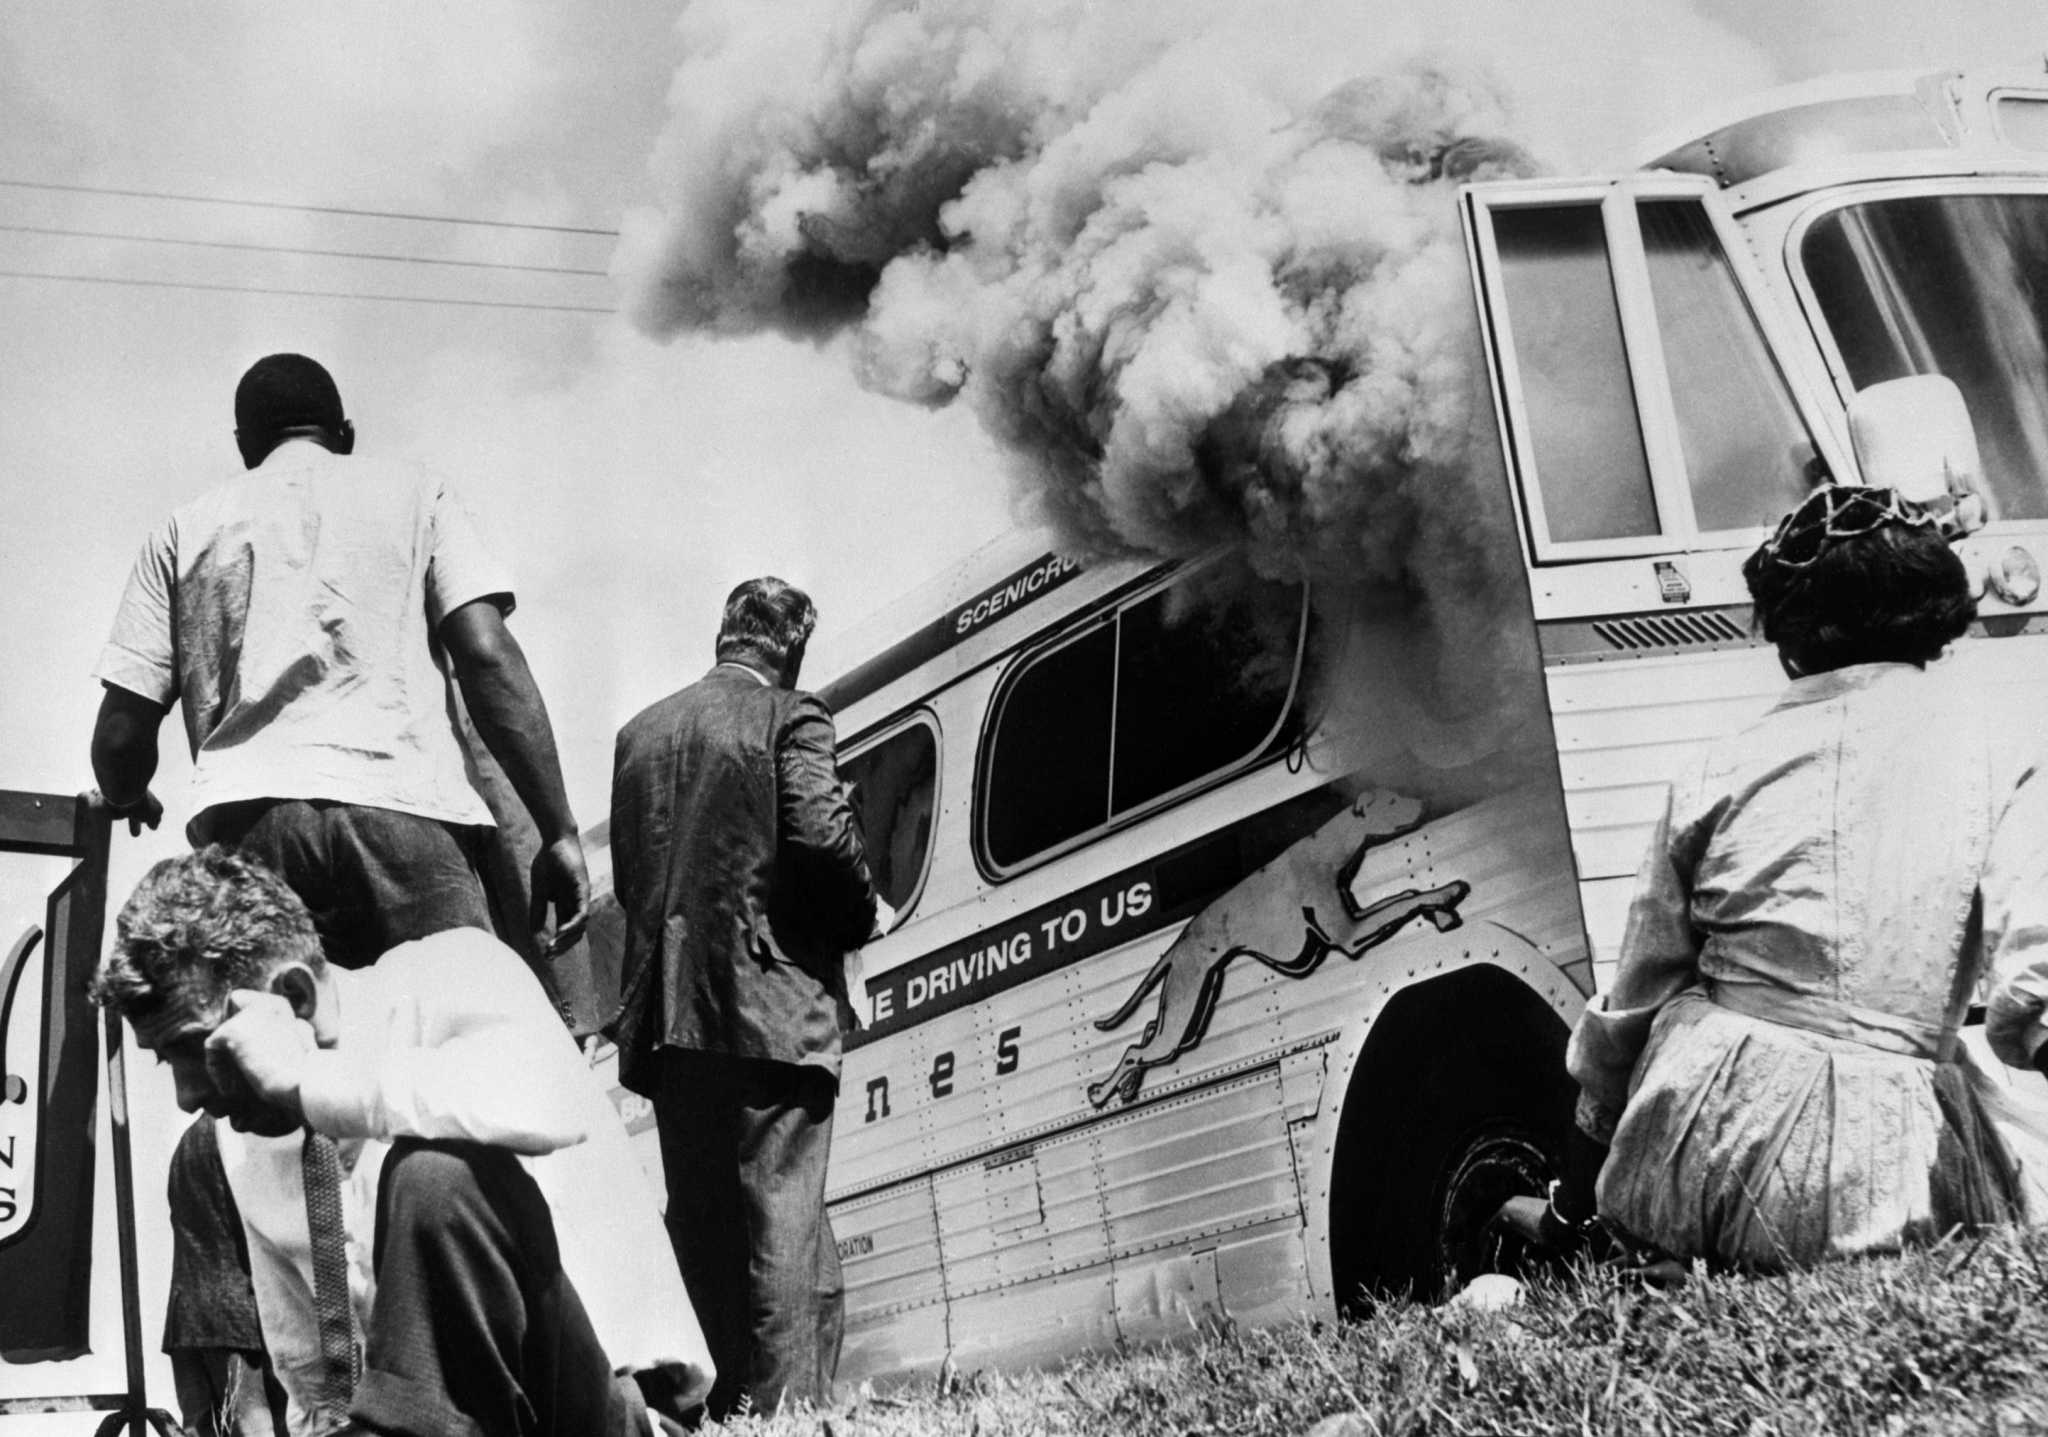 Freedom Riders' work still not done